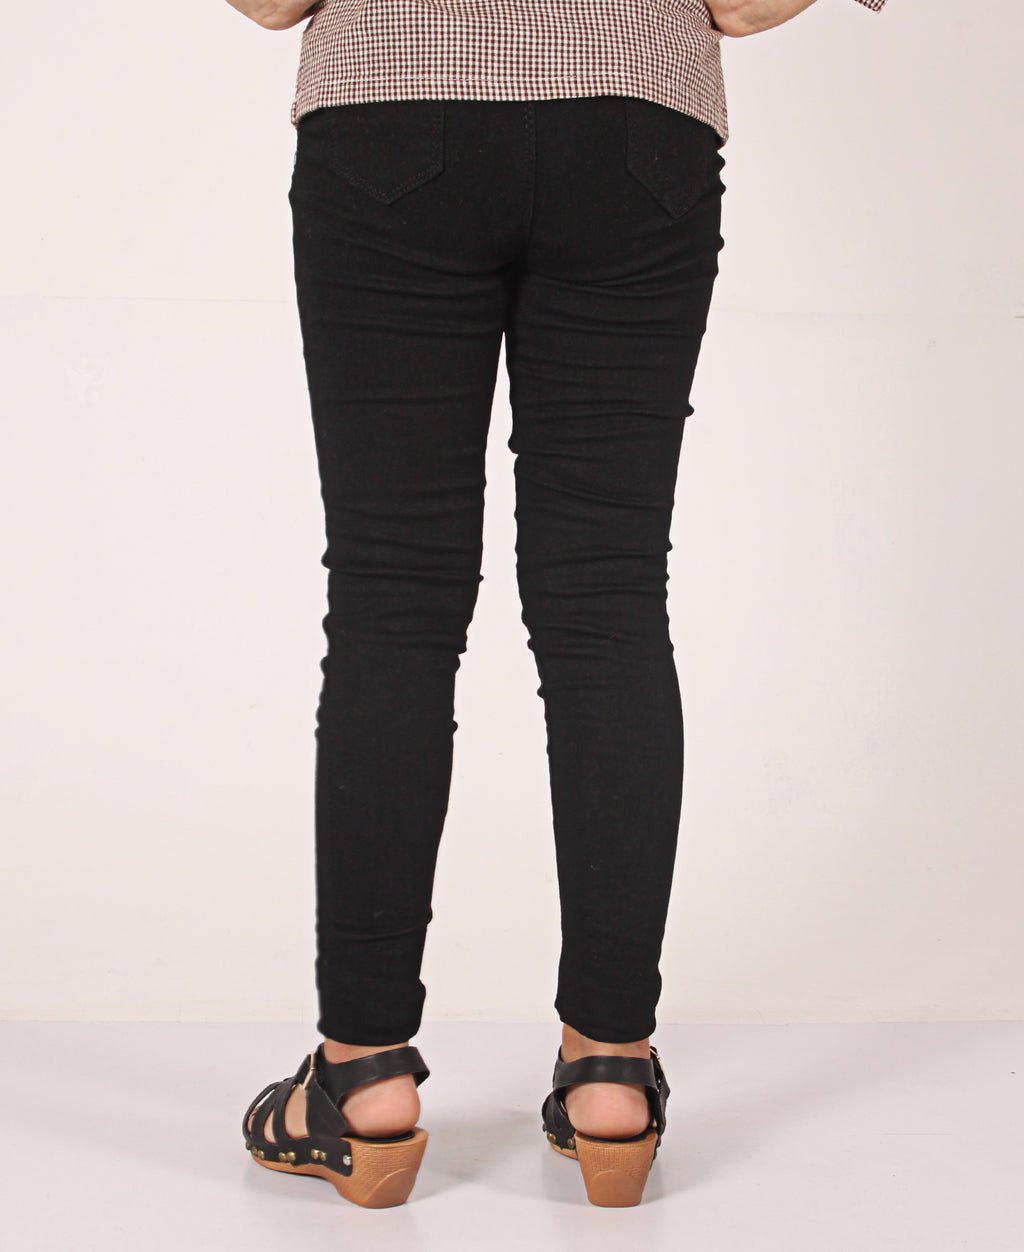 Girls Plain Leggings - Black